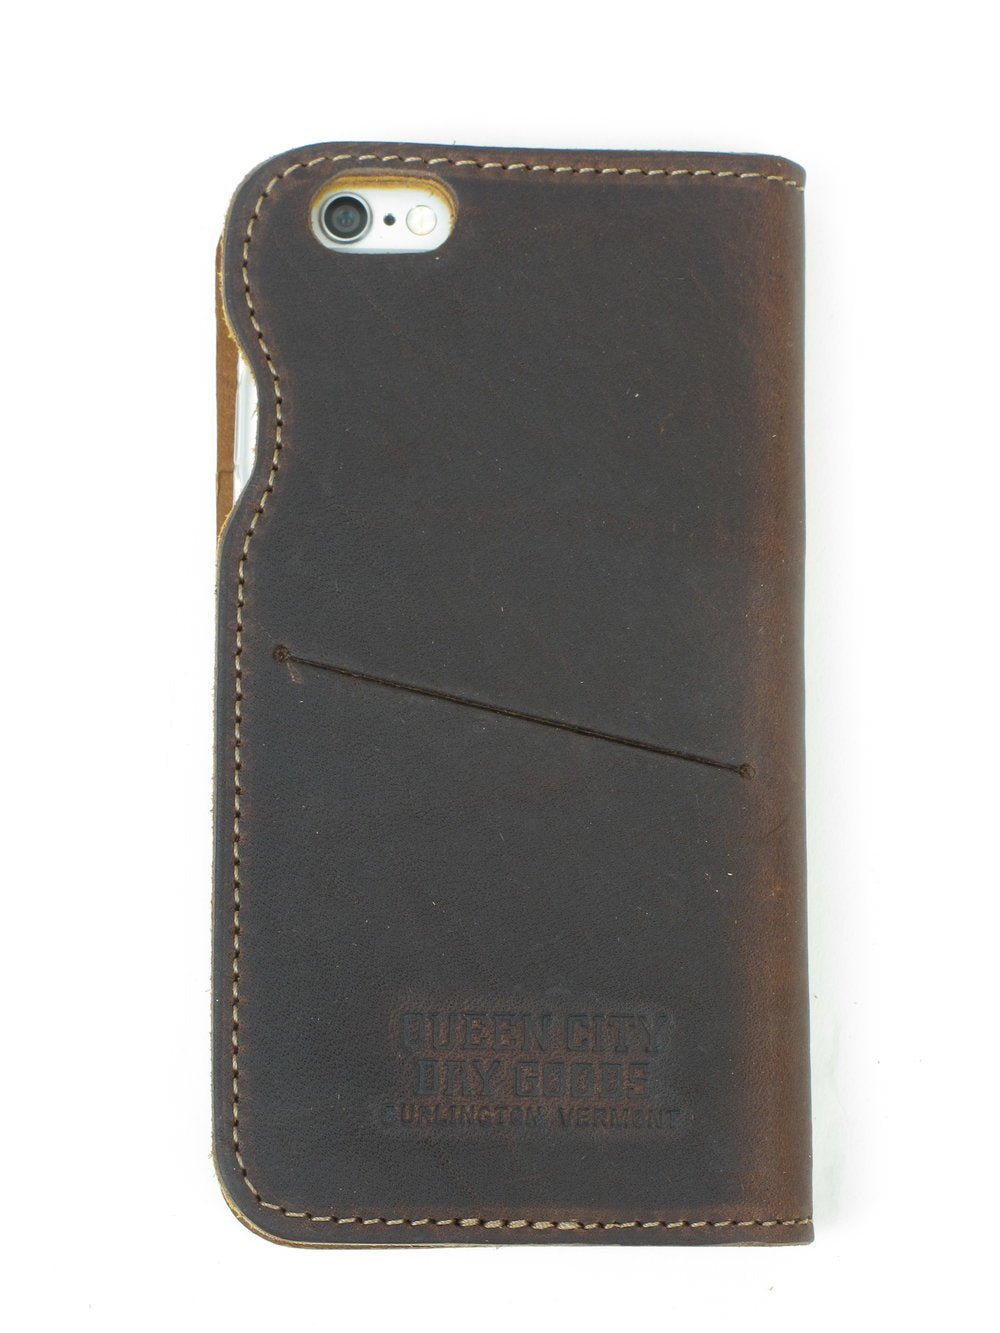 Leather iPhone 6 Wallet (6S compatible)